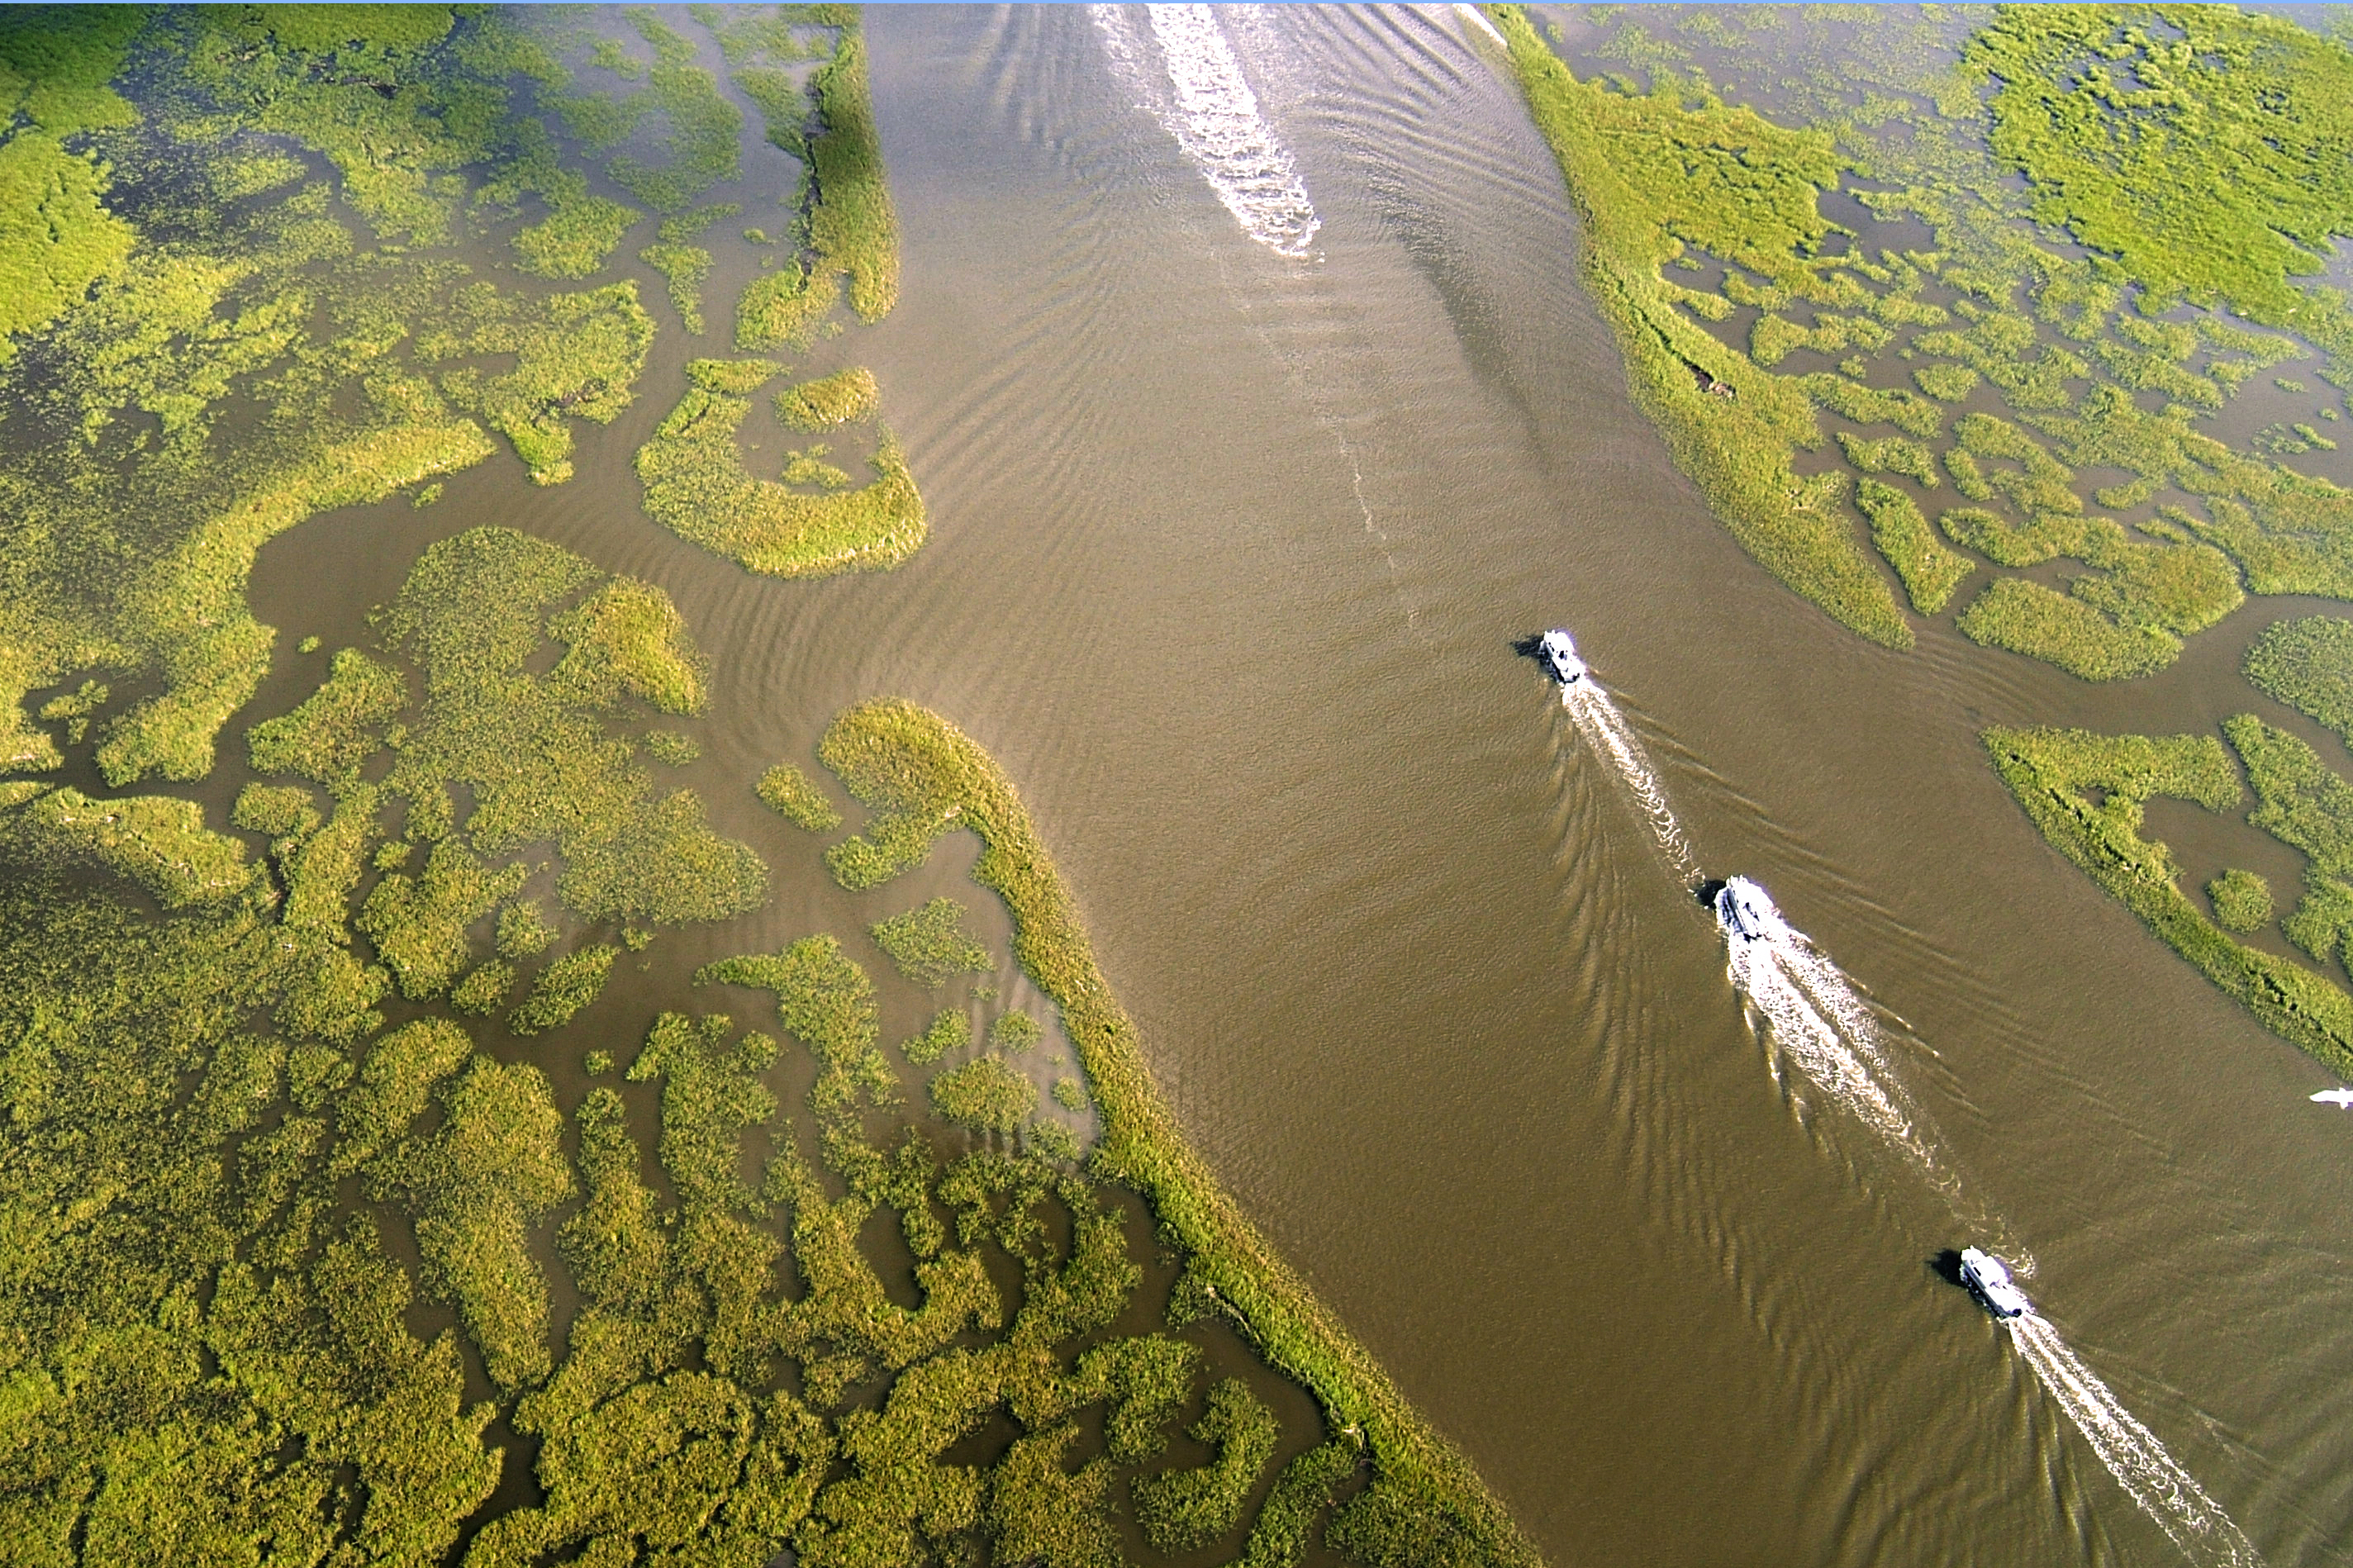 Aerial view of boats navigating waters in a marsh on the Louisiana coast. Credit: State of Louisiana